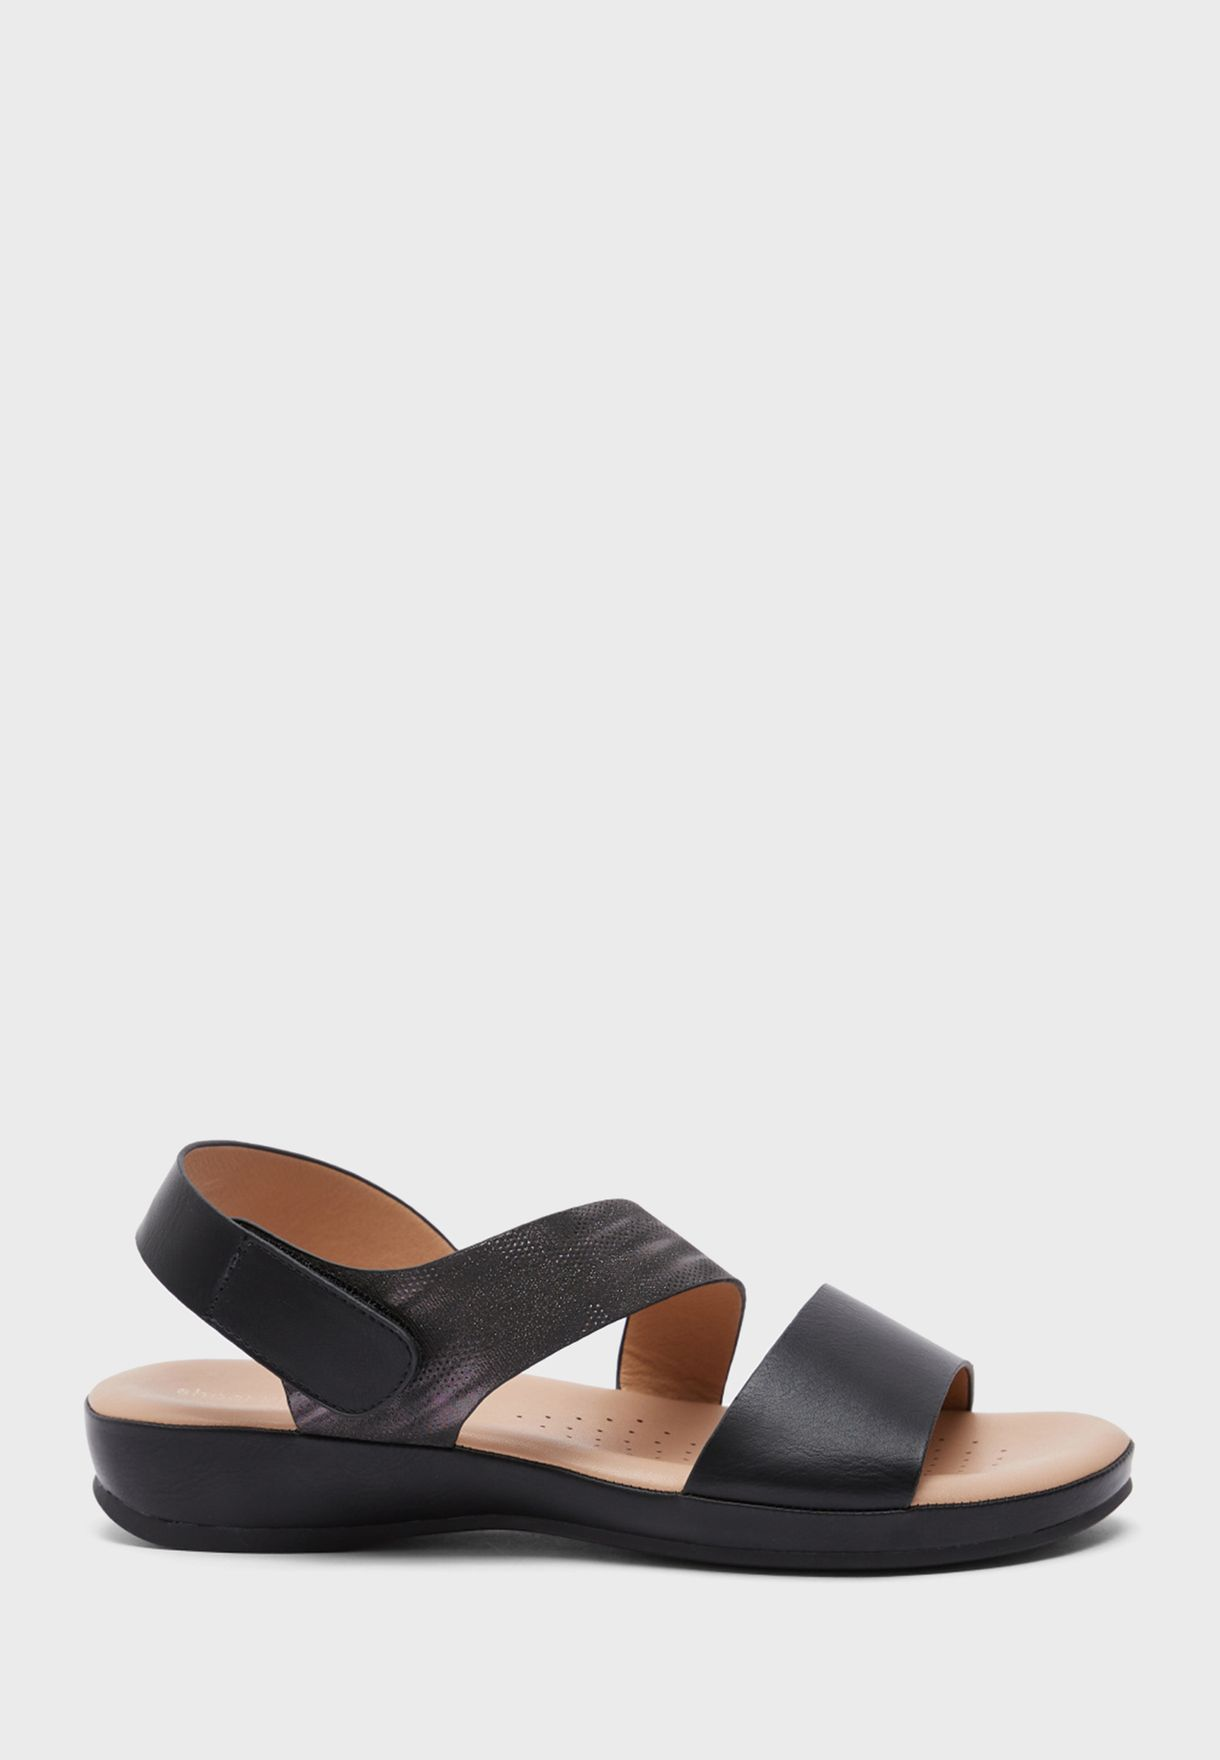 Casual Low Heel Sandal